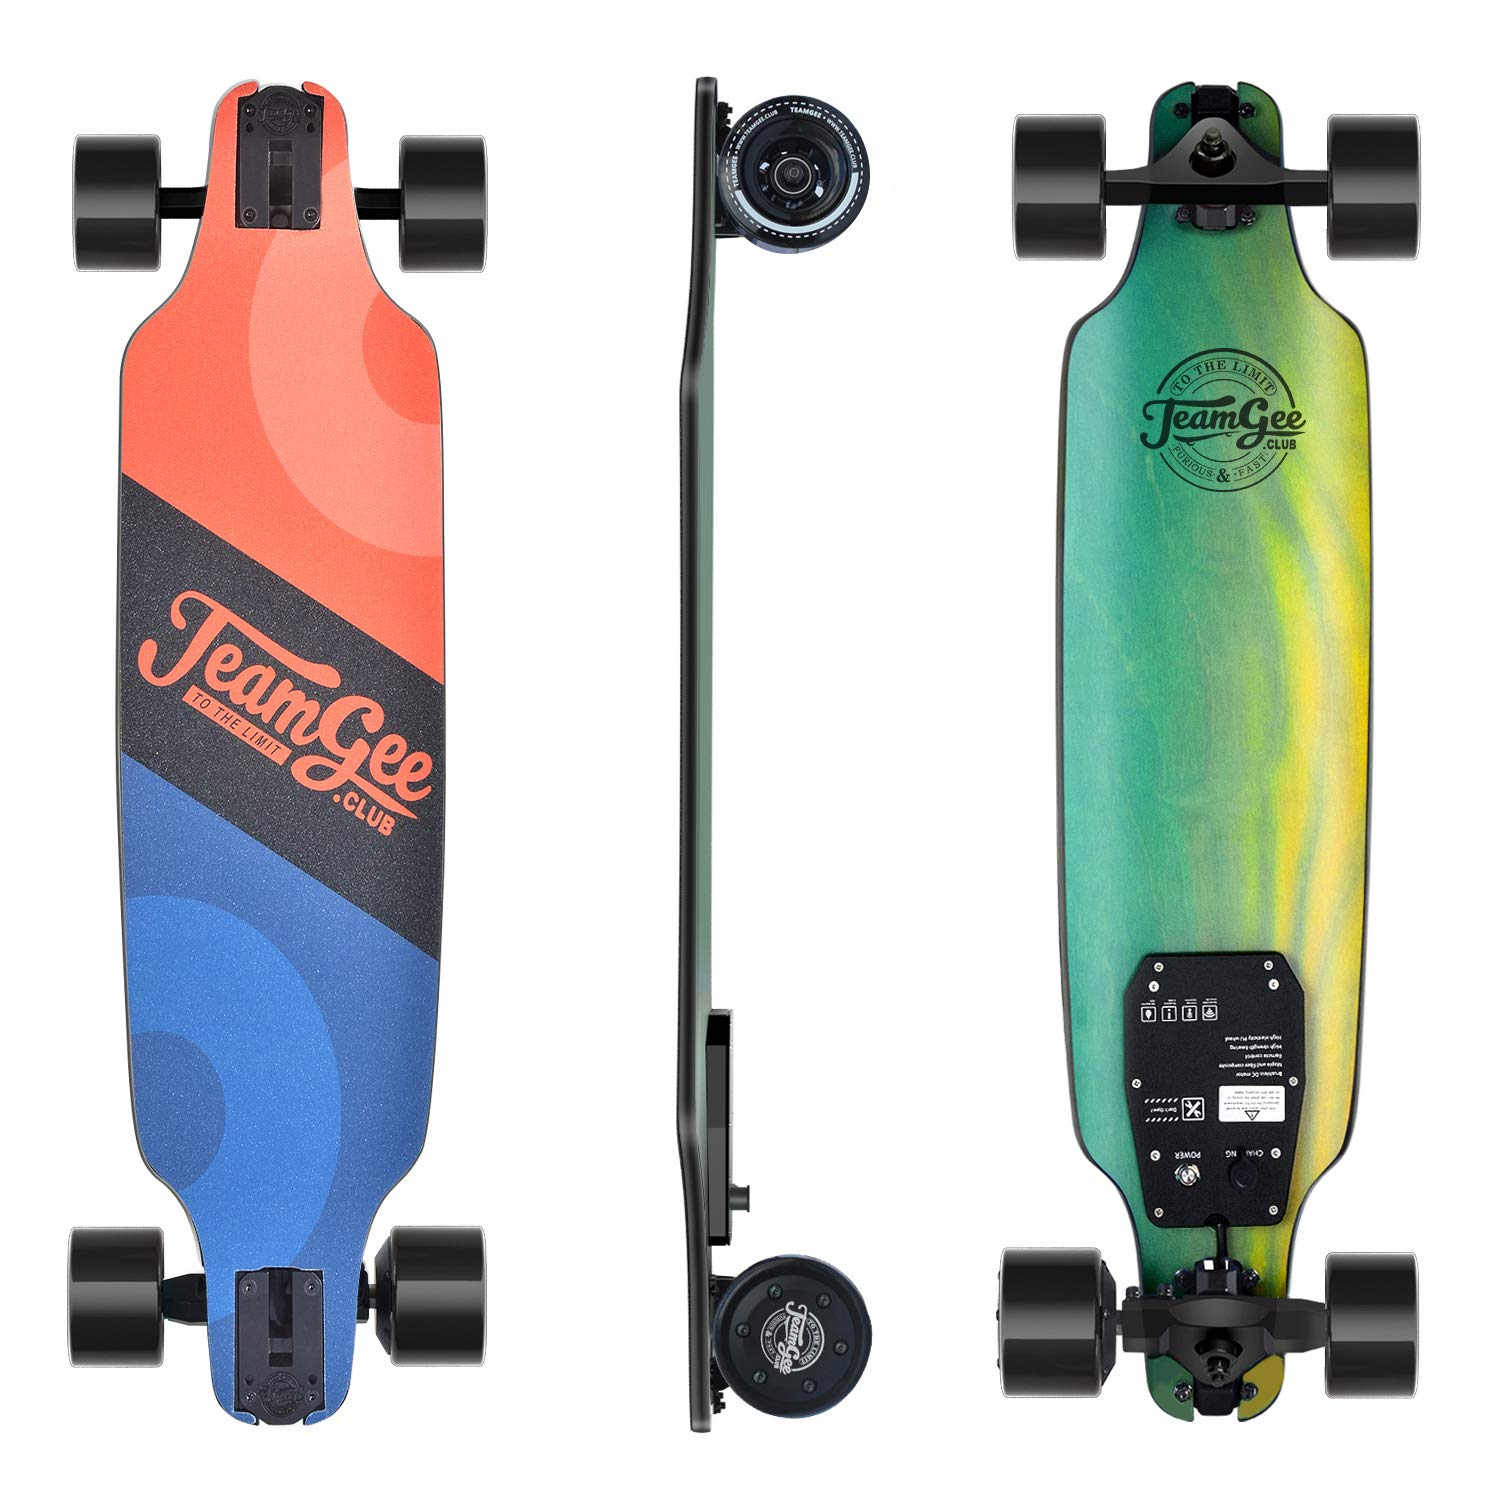 teamgee H8 31'' Electric Skateboard, 15 MPH Top Speed, 480W Motor, 8 Miles Range, 11.6 Lbs, 10 Layers Maple Longboard with Wireless Remote Control